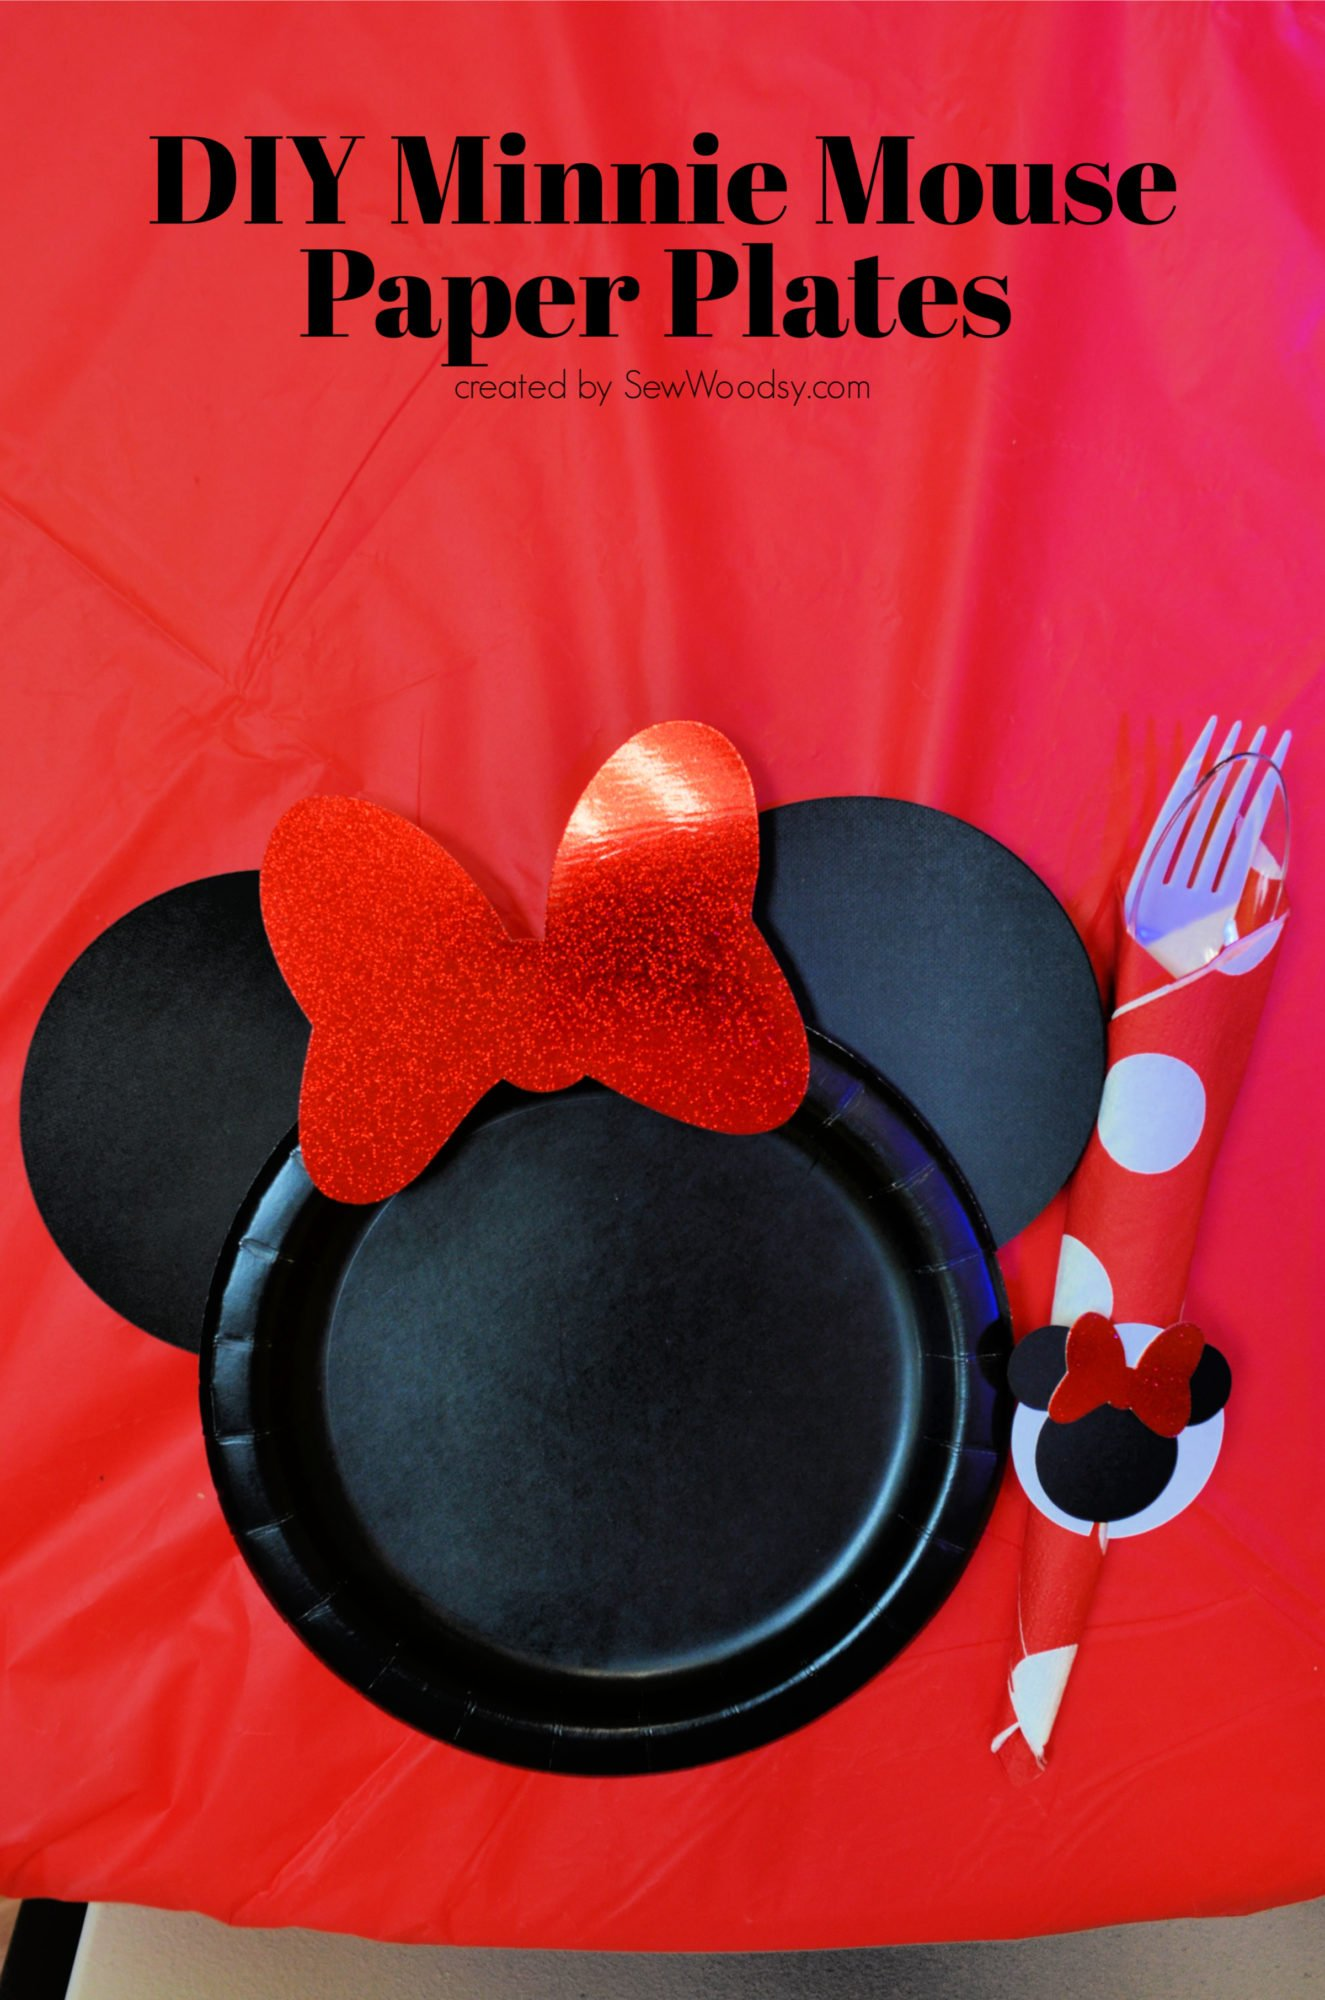 DIY Minnie Mouse Paper Plates